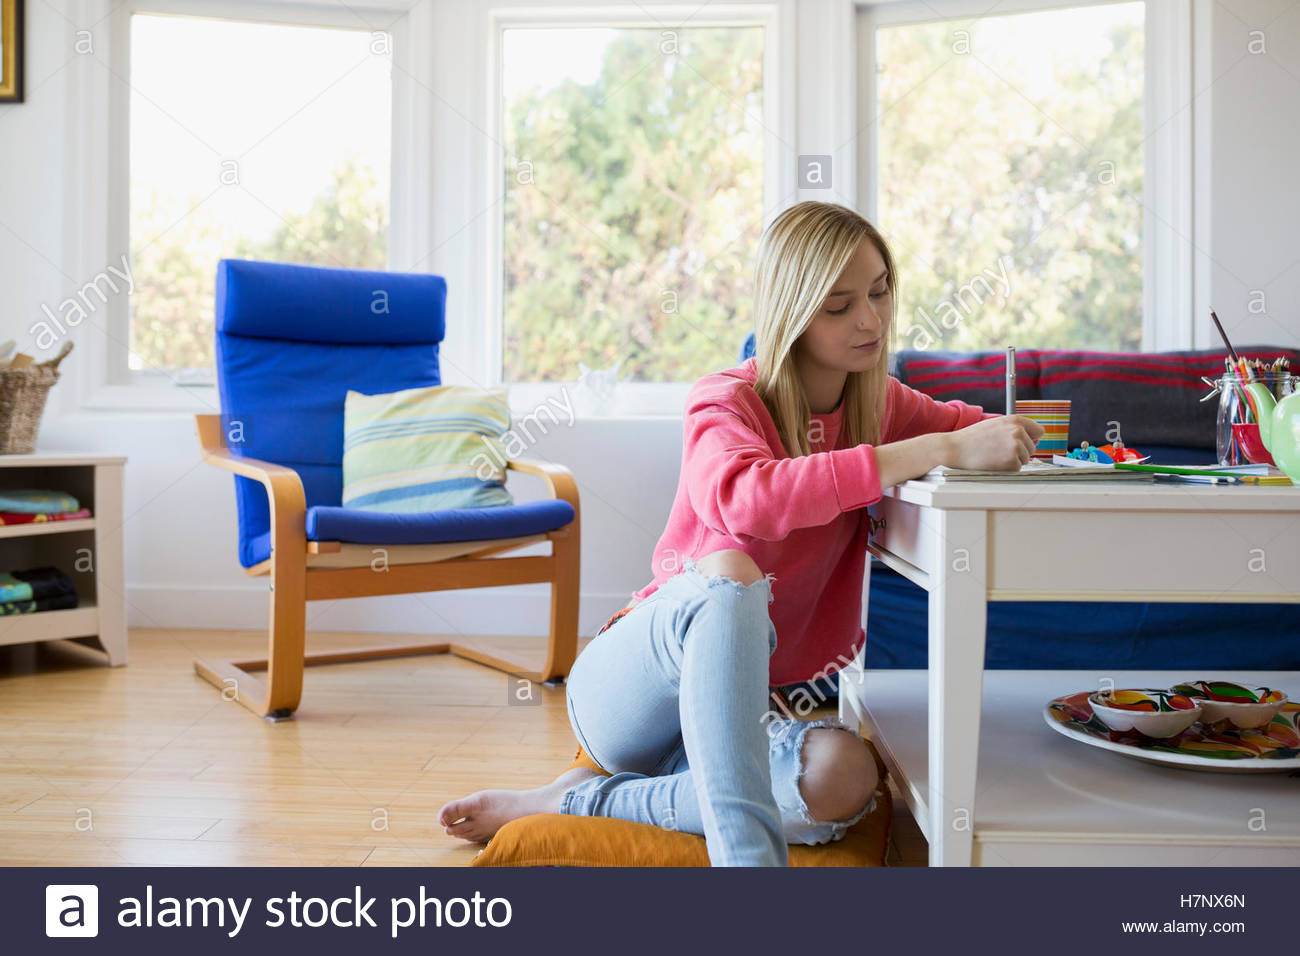 Young woman writing in notebook on coffee table - Stock Image